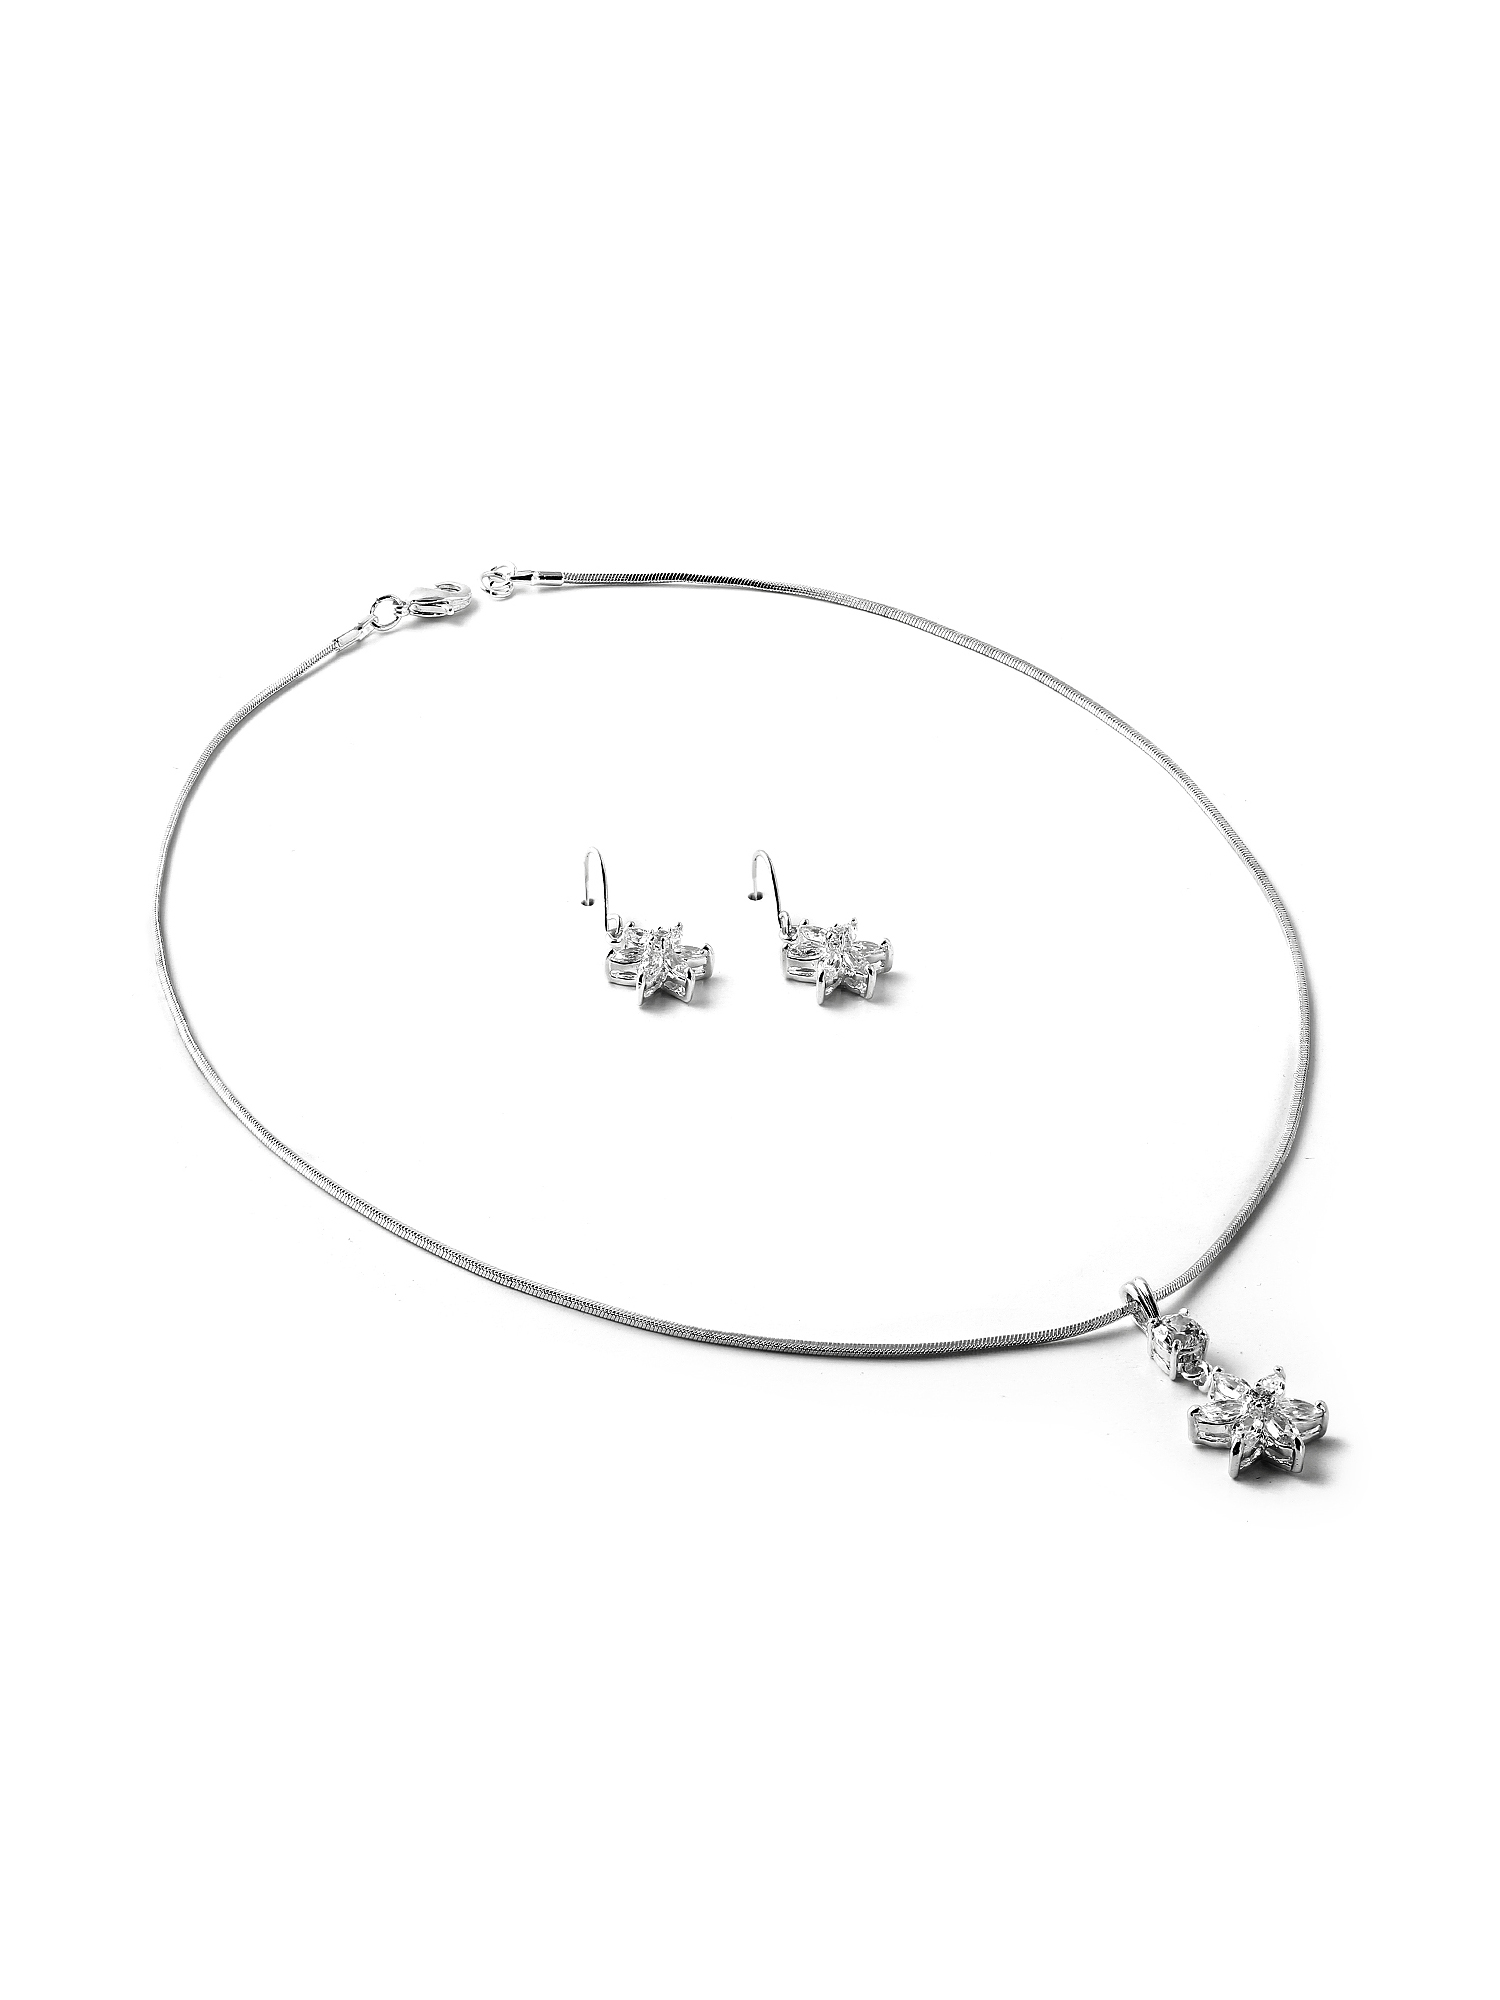 silver twist chain with dangle crystal cubic zirconia 6 point flower necklace and matching wire earrings